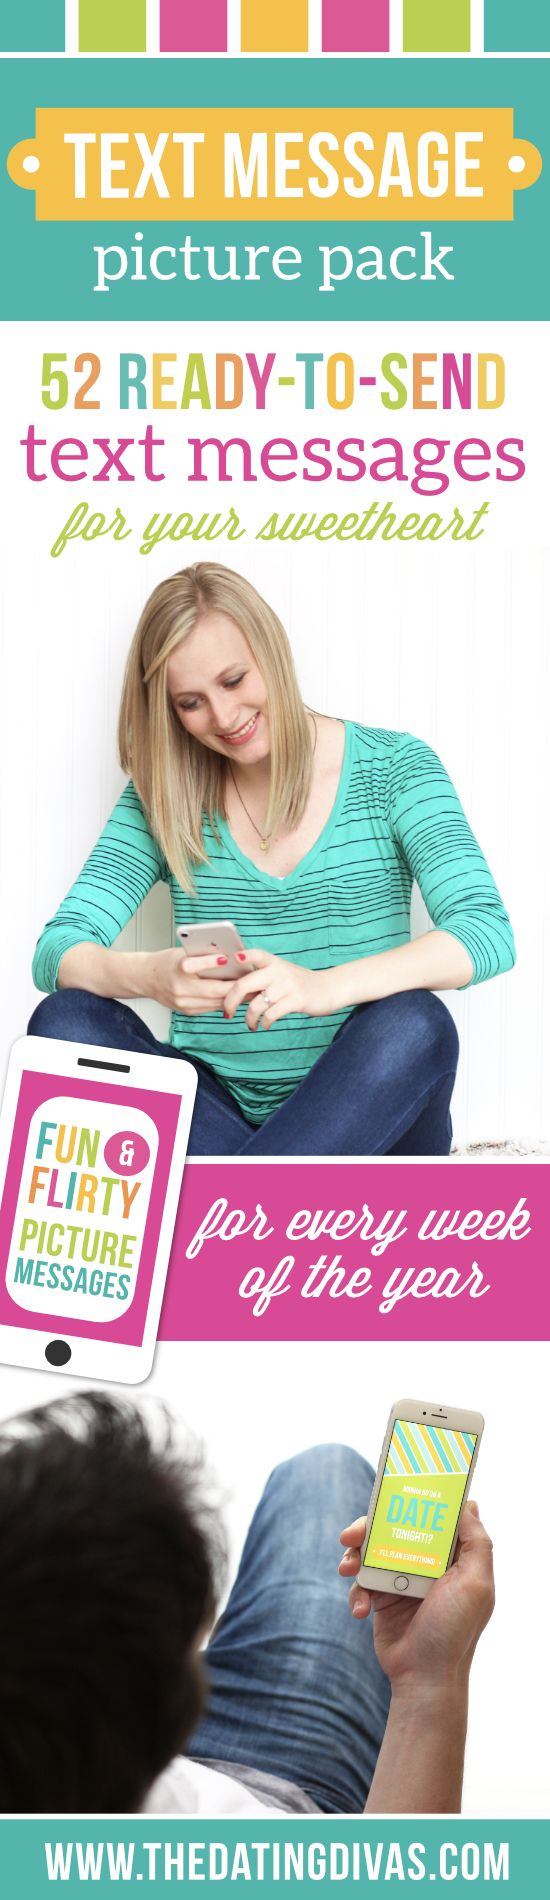 Text Message Picture Pack- 52 ready-to-send flirty picture text messages to text your husband, wife, boyfriend, or girlfriend! These are so FUN! From TheDatingDivas.com